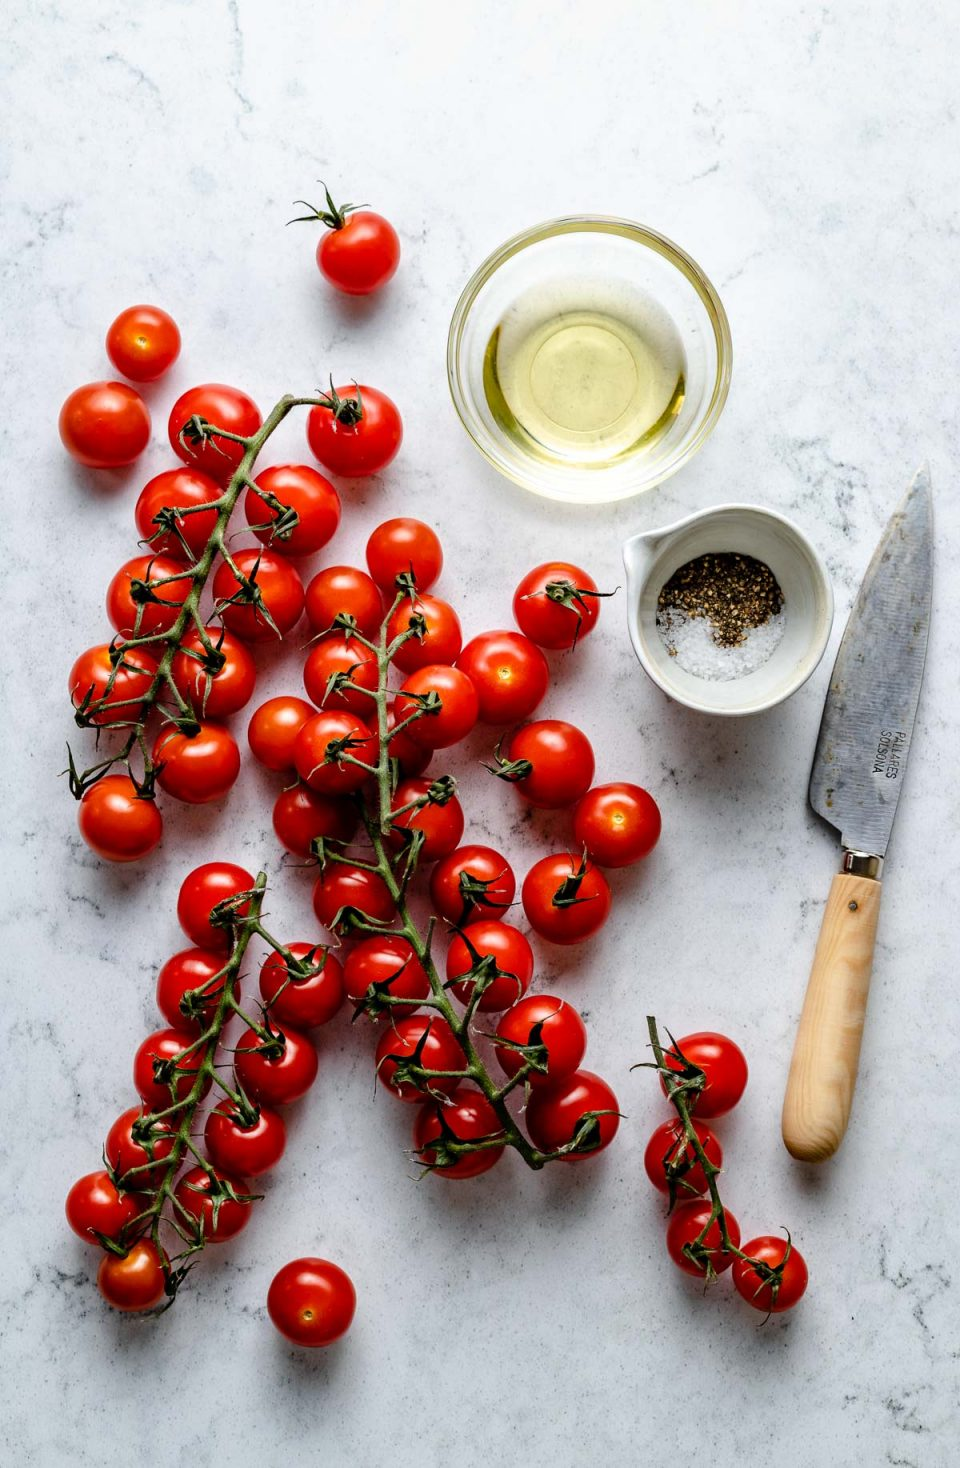 Grilled tomato ingredients arranged on a white & grey marble surface - vines of cherry tomatoes & loose cherry tomatoes, avocado oil, kosher salt, & ground black pepper. A pairing knife rests on the surface next to the ingredients.